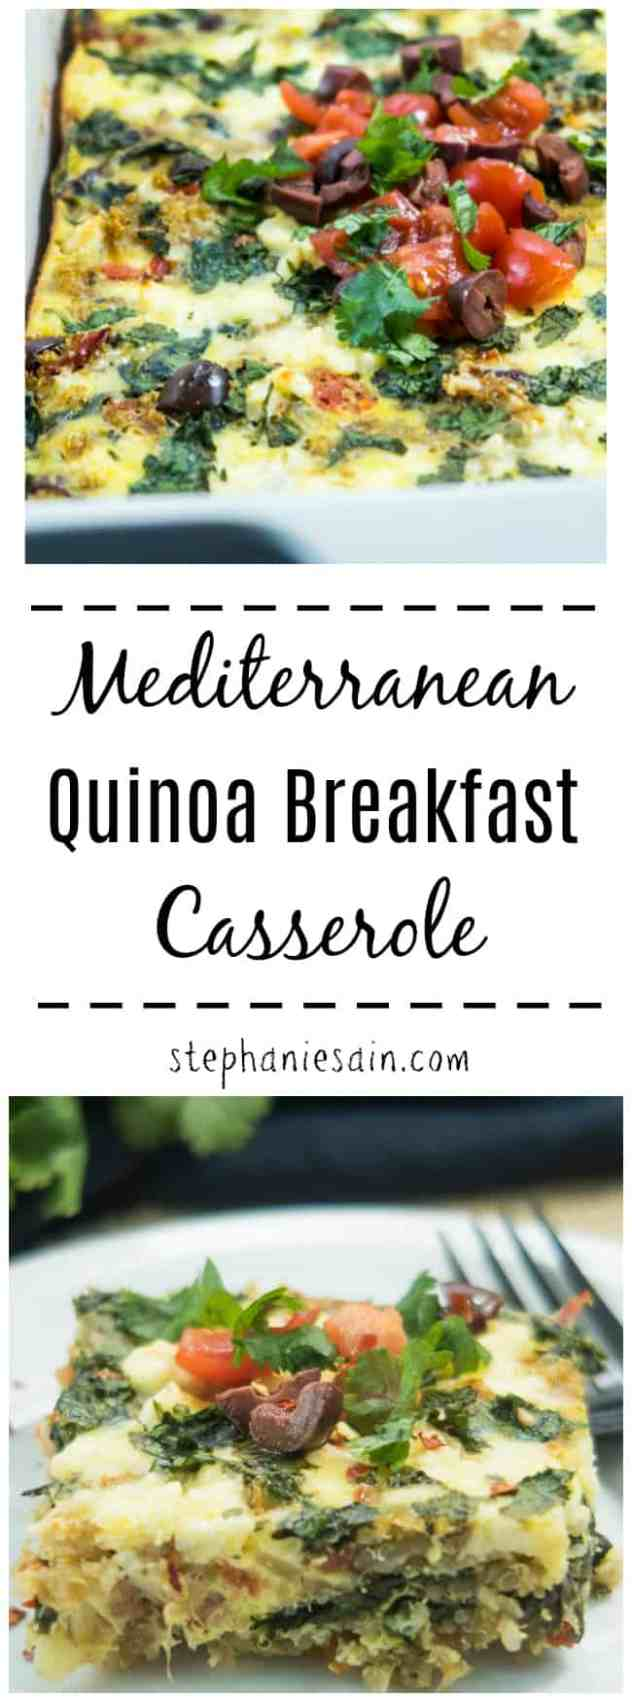 This Mediterranean Quinoa Breakfast Casserole is great for a special occasion brunch or even for an nice weekend breakfast. Loaded with tons of fresh veggies, olives, & feta cheese. Can be made ahead and reheated as needed. Gluten Free & Vegetarian.